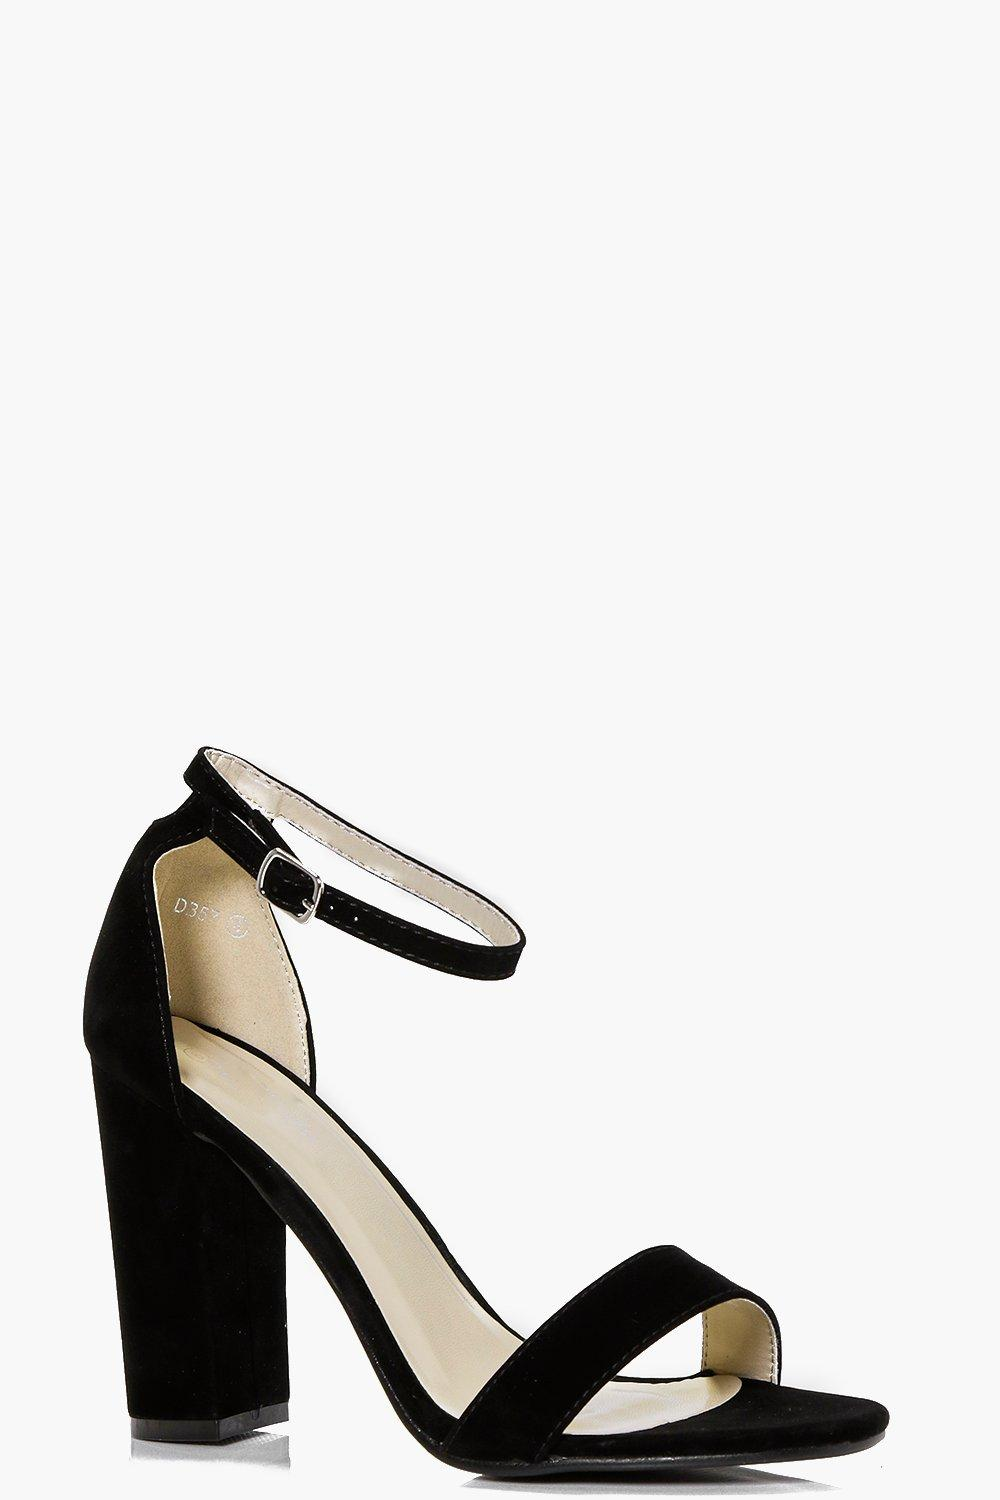 Eleanor Peeptoe Block Heel